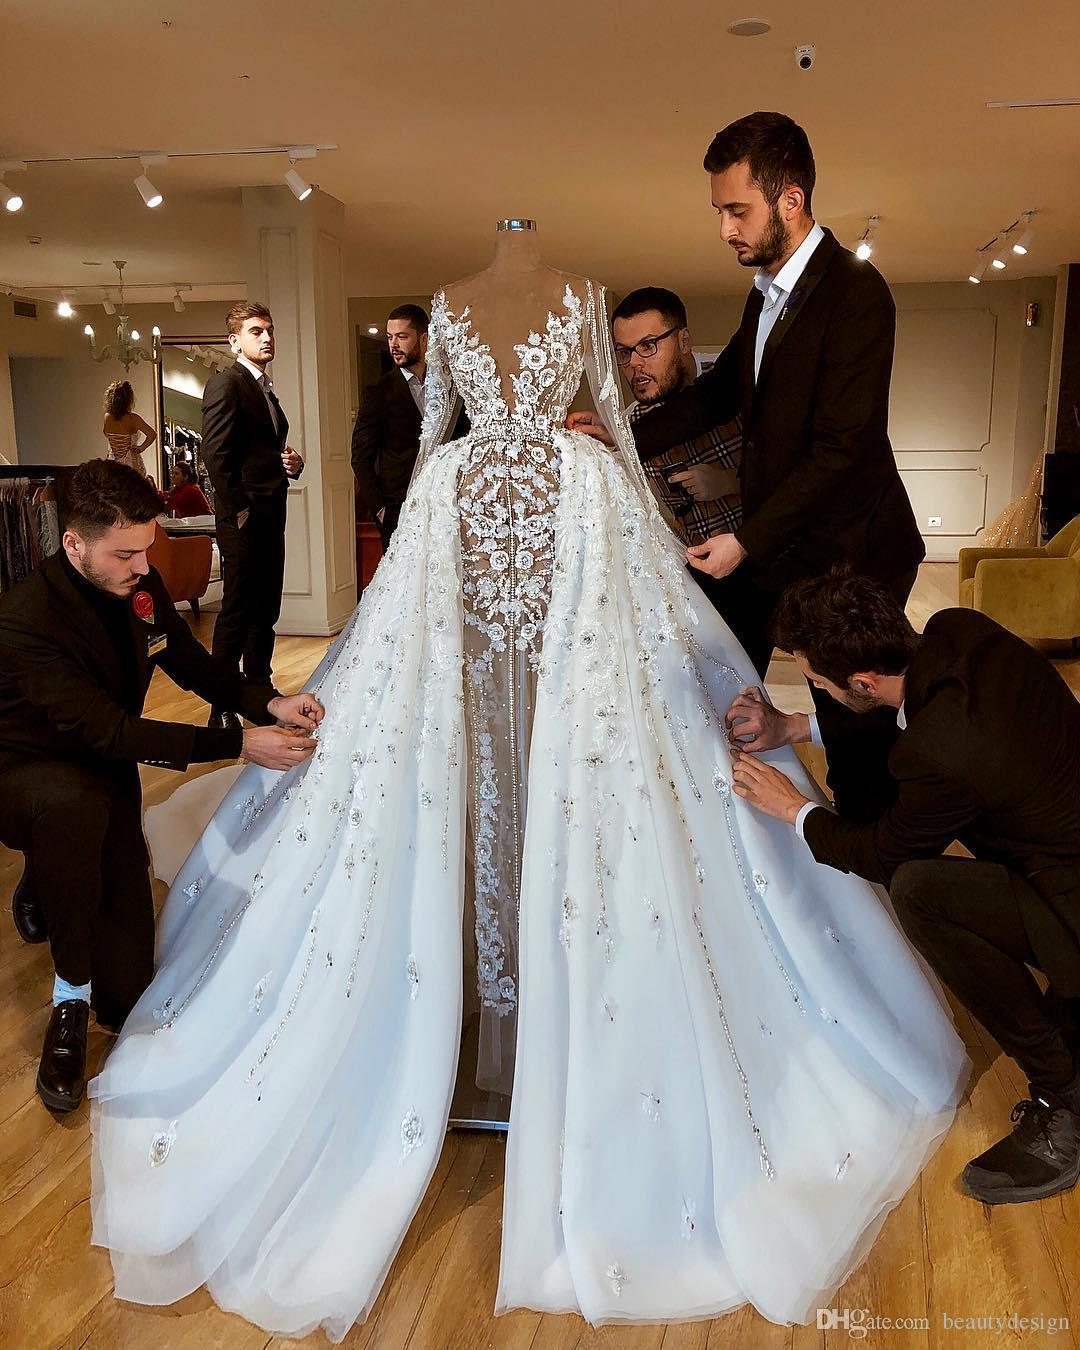 Sparkly Luxurious African 2020 Wedding Dresses With Skirts Lace Beaded Sheath Bridal Dresses Long Sleeves Through Wedding Gowns